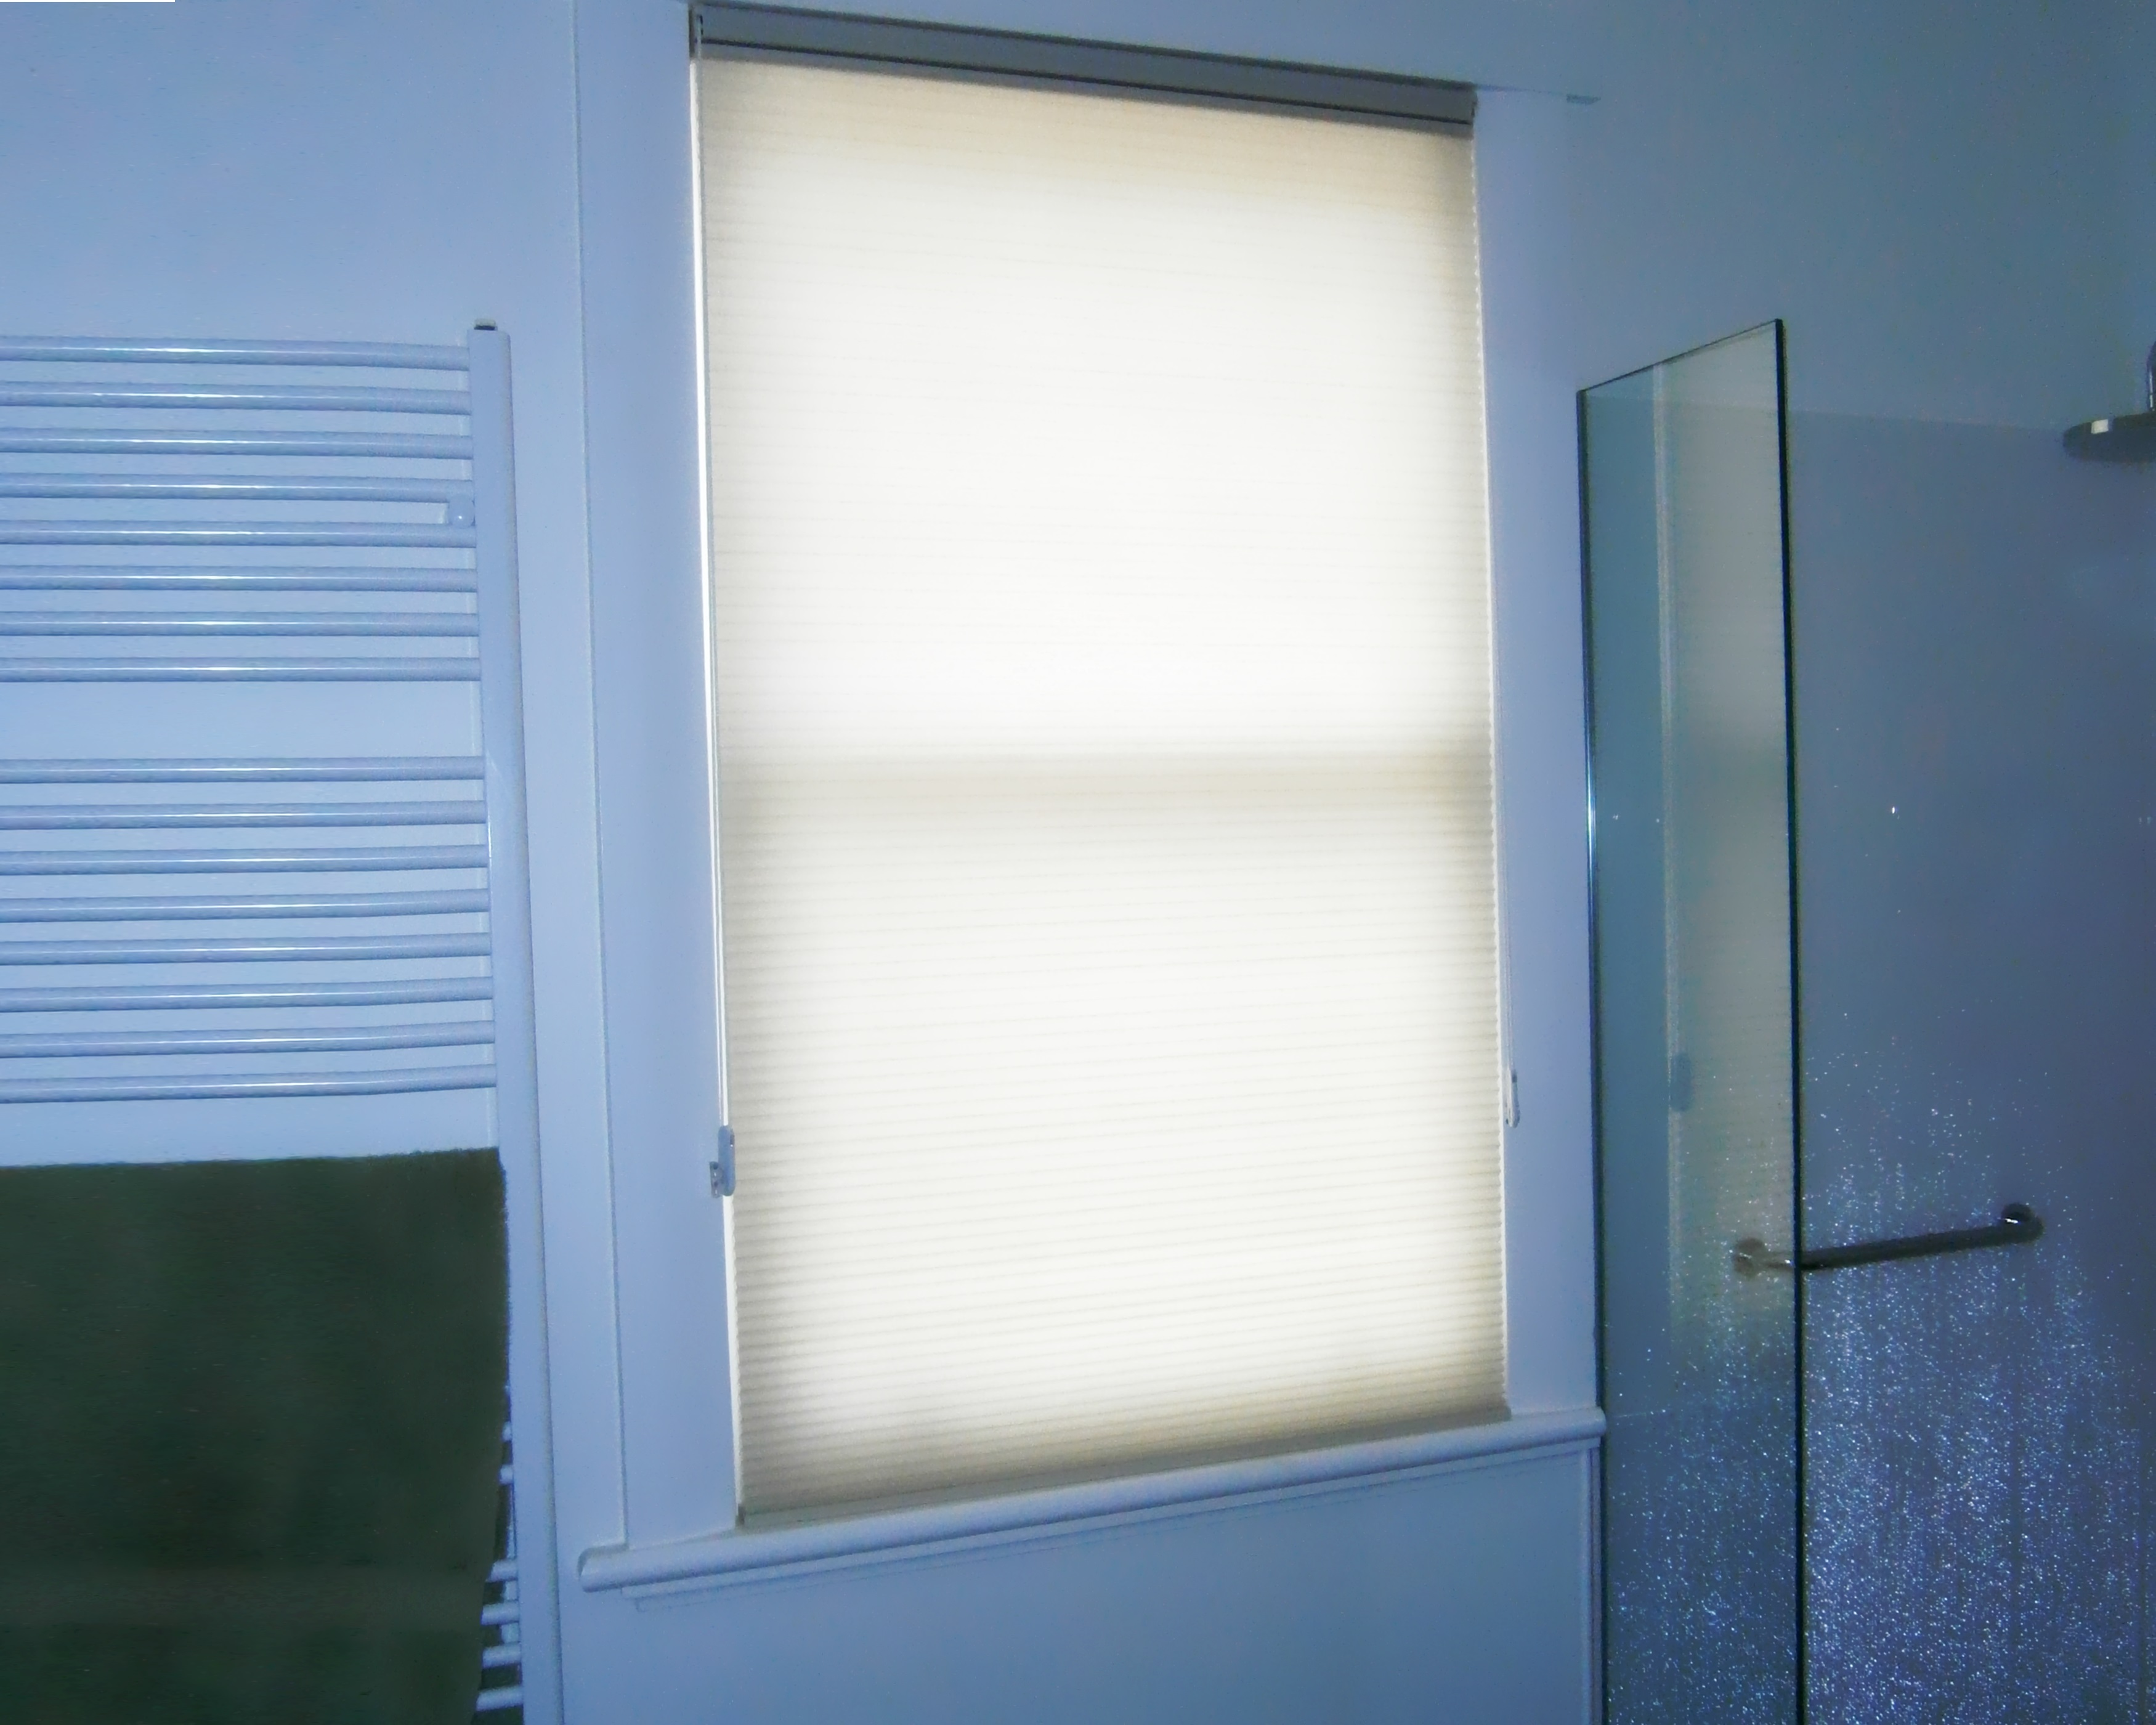 honeycomb blinds in a bathroom